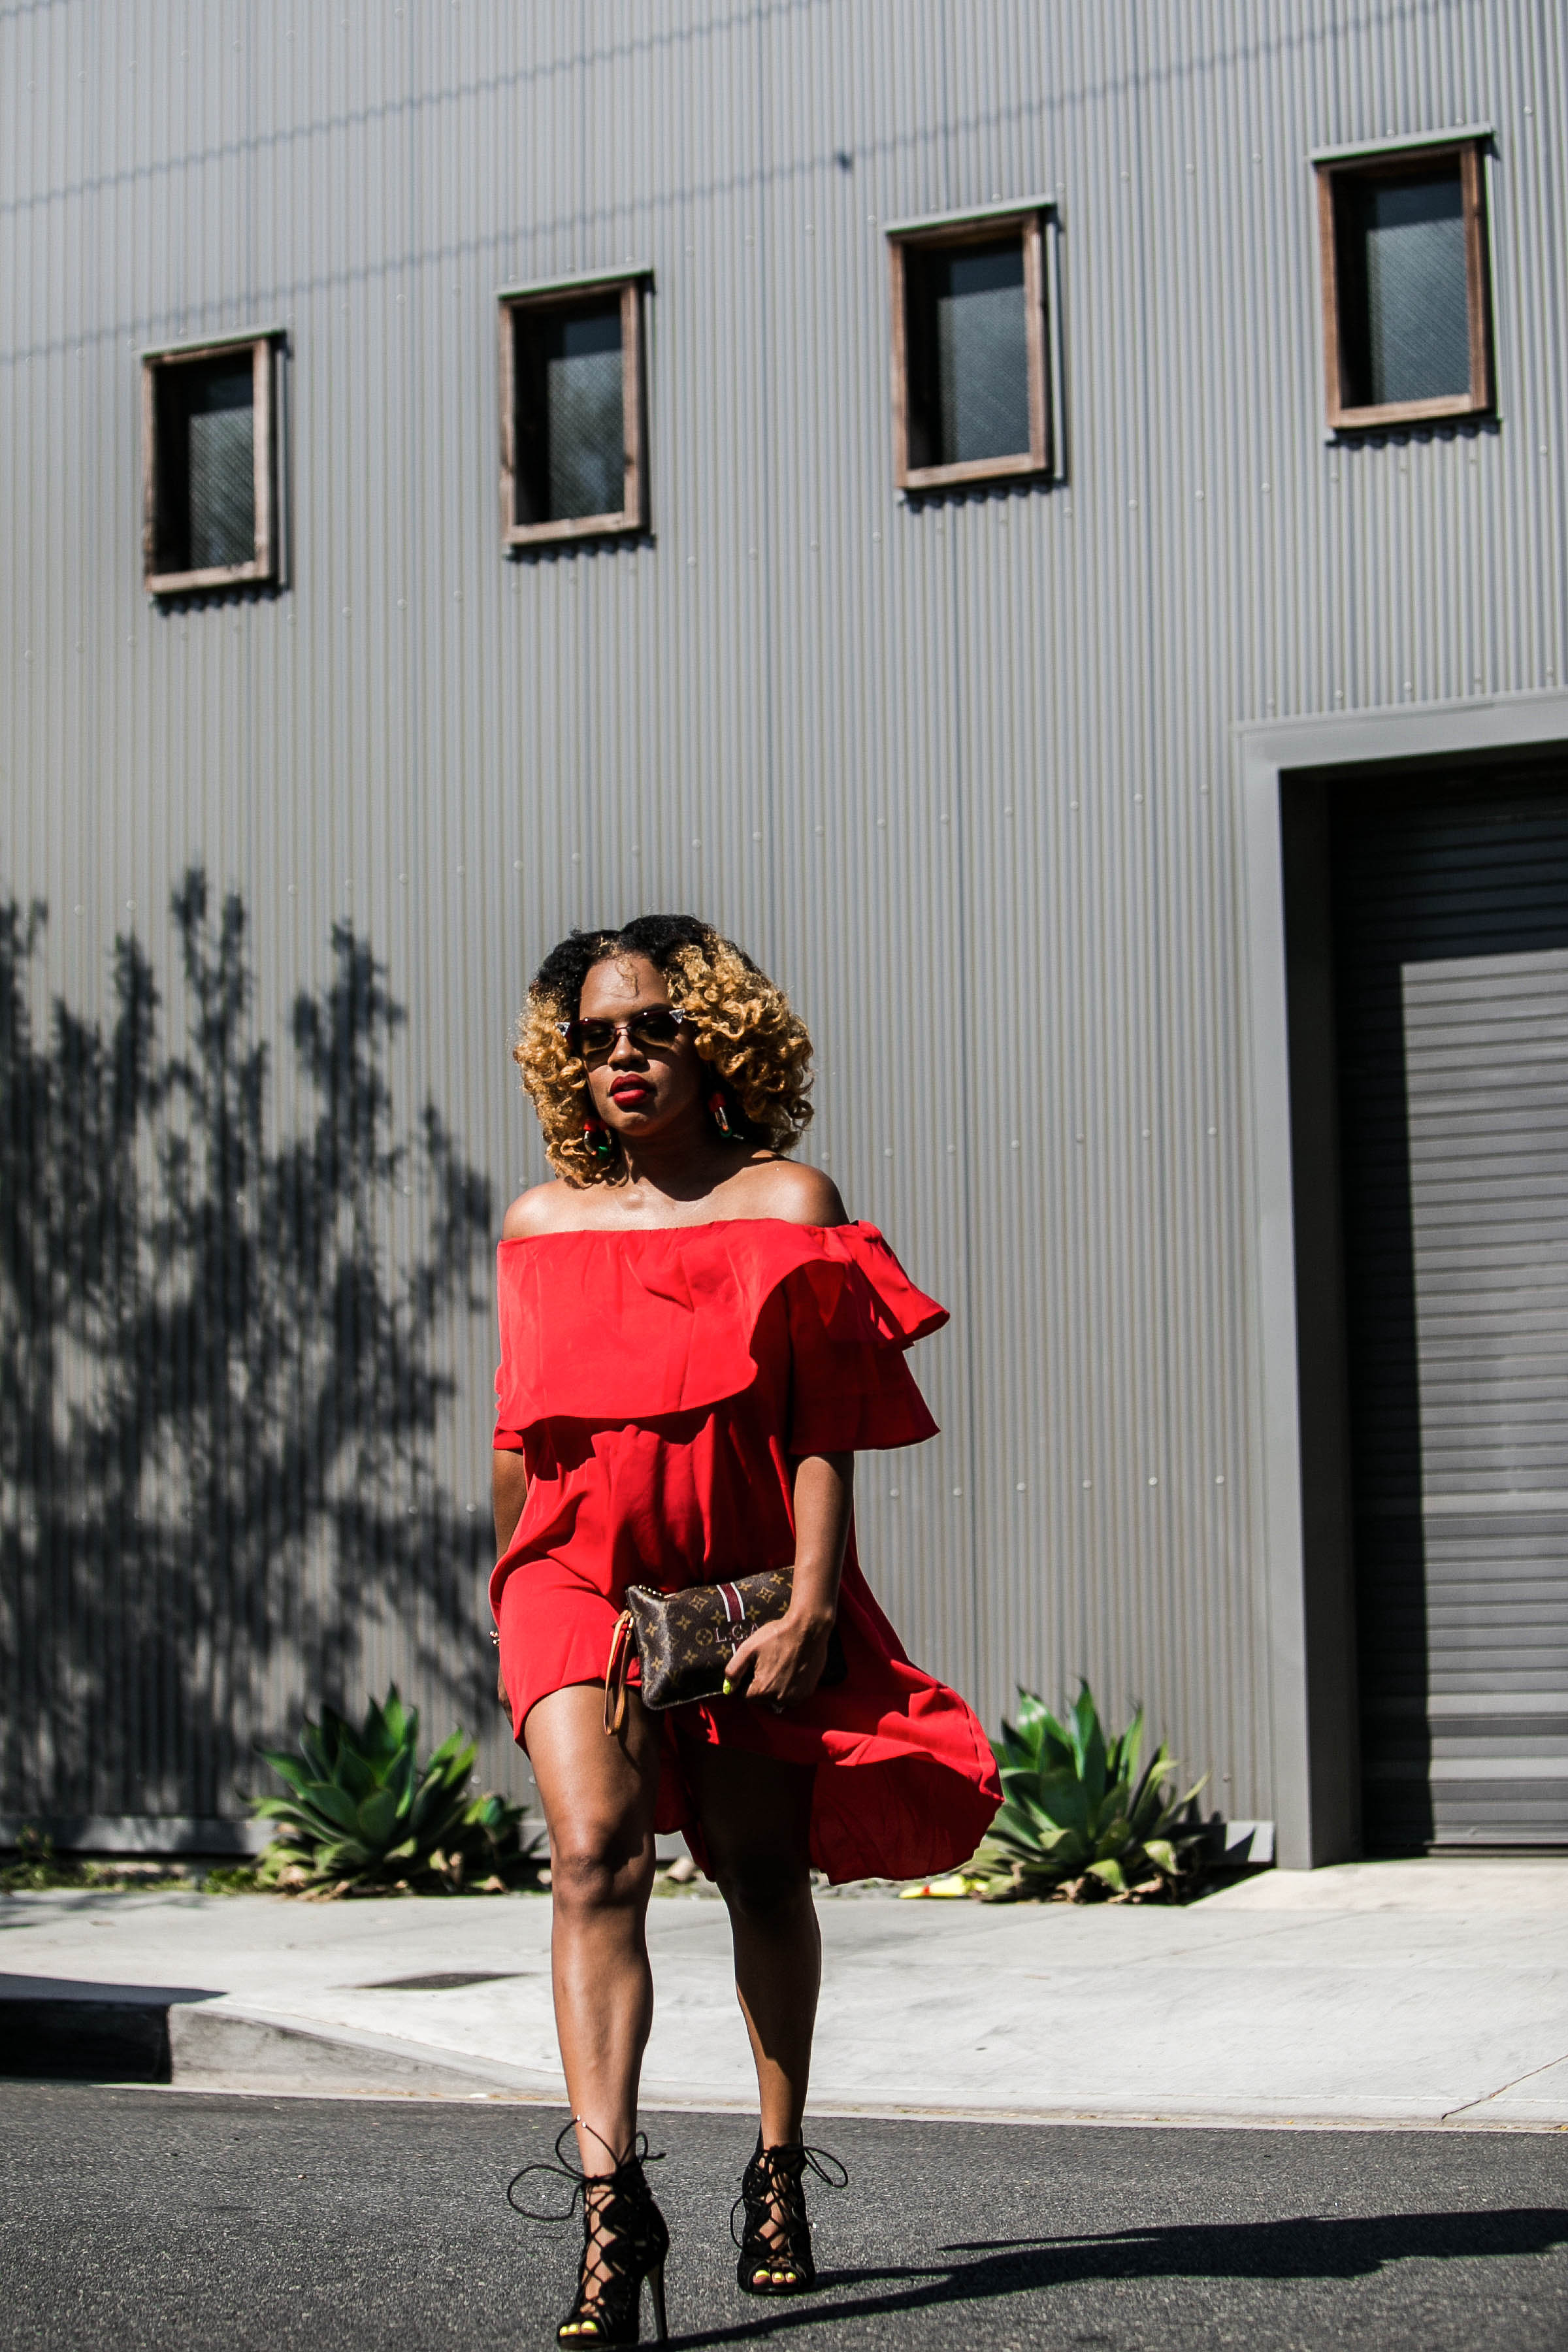 She Inside Red Dress On The Move - https://thehautemommie.com/lady-in-the-red-dress/